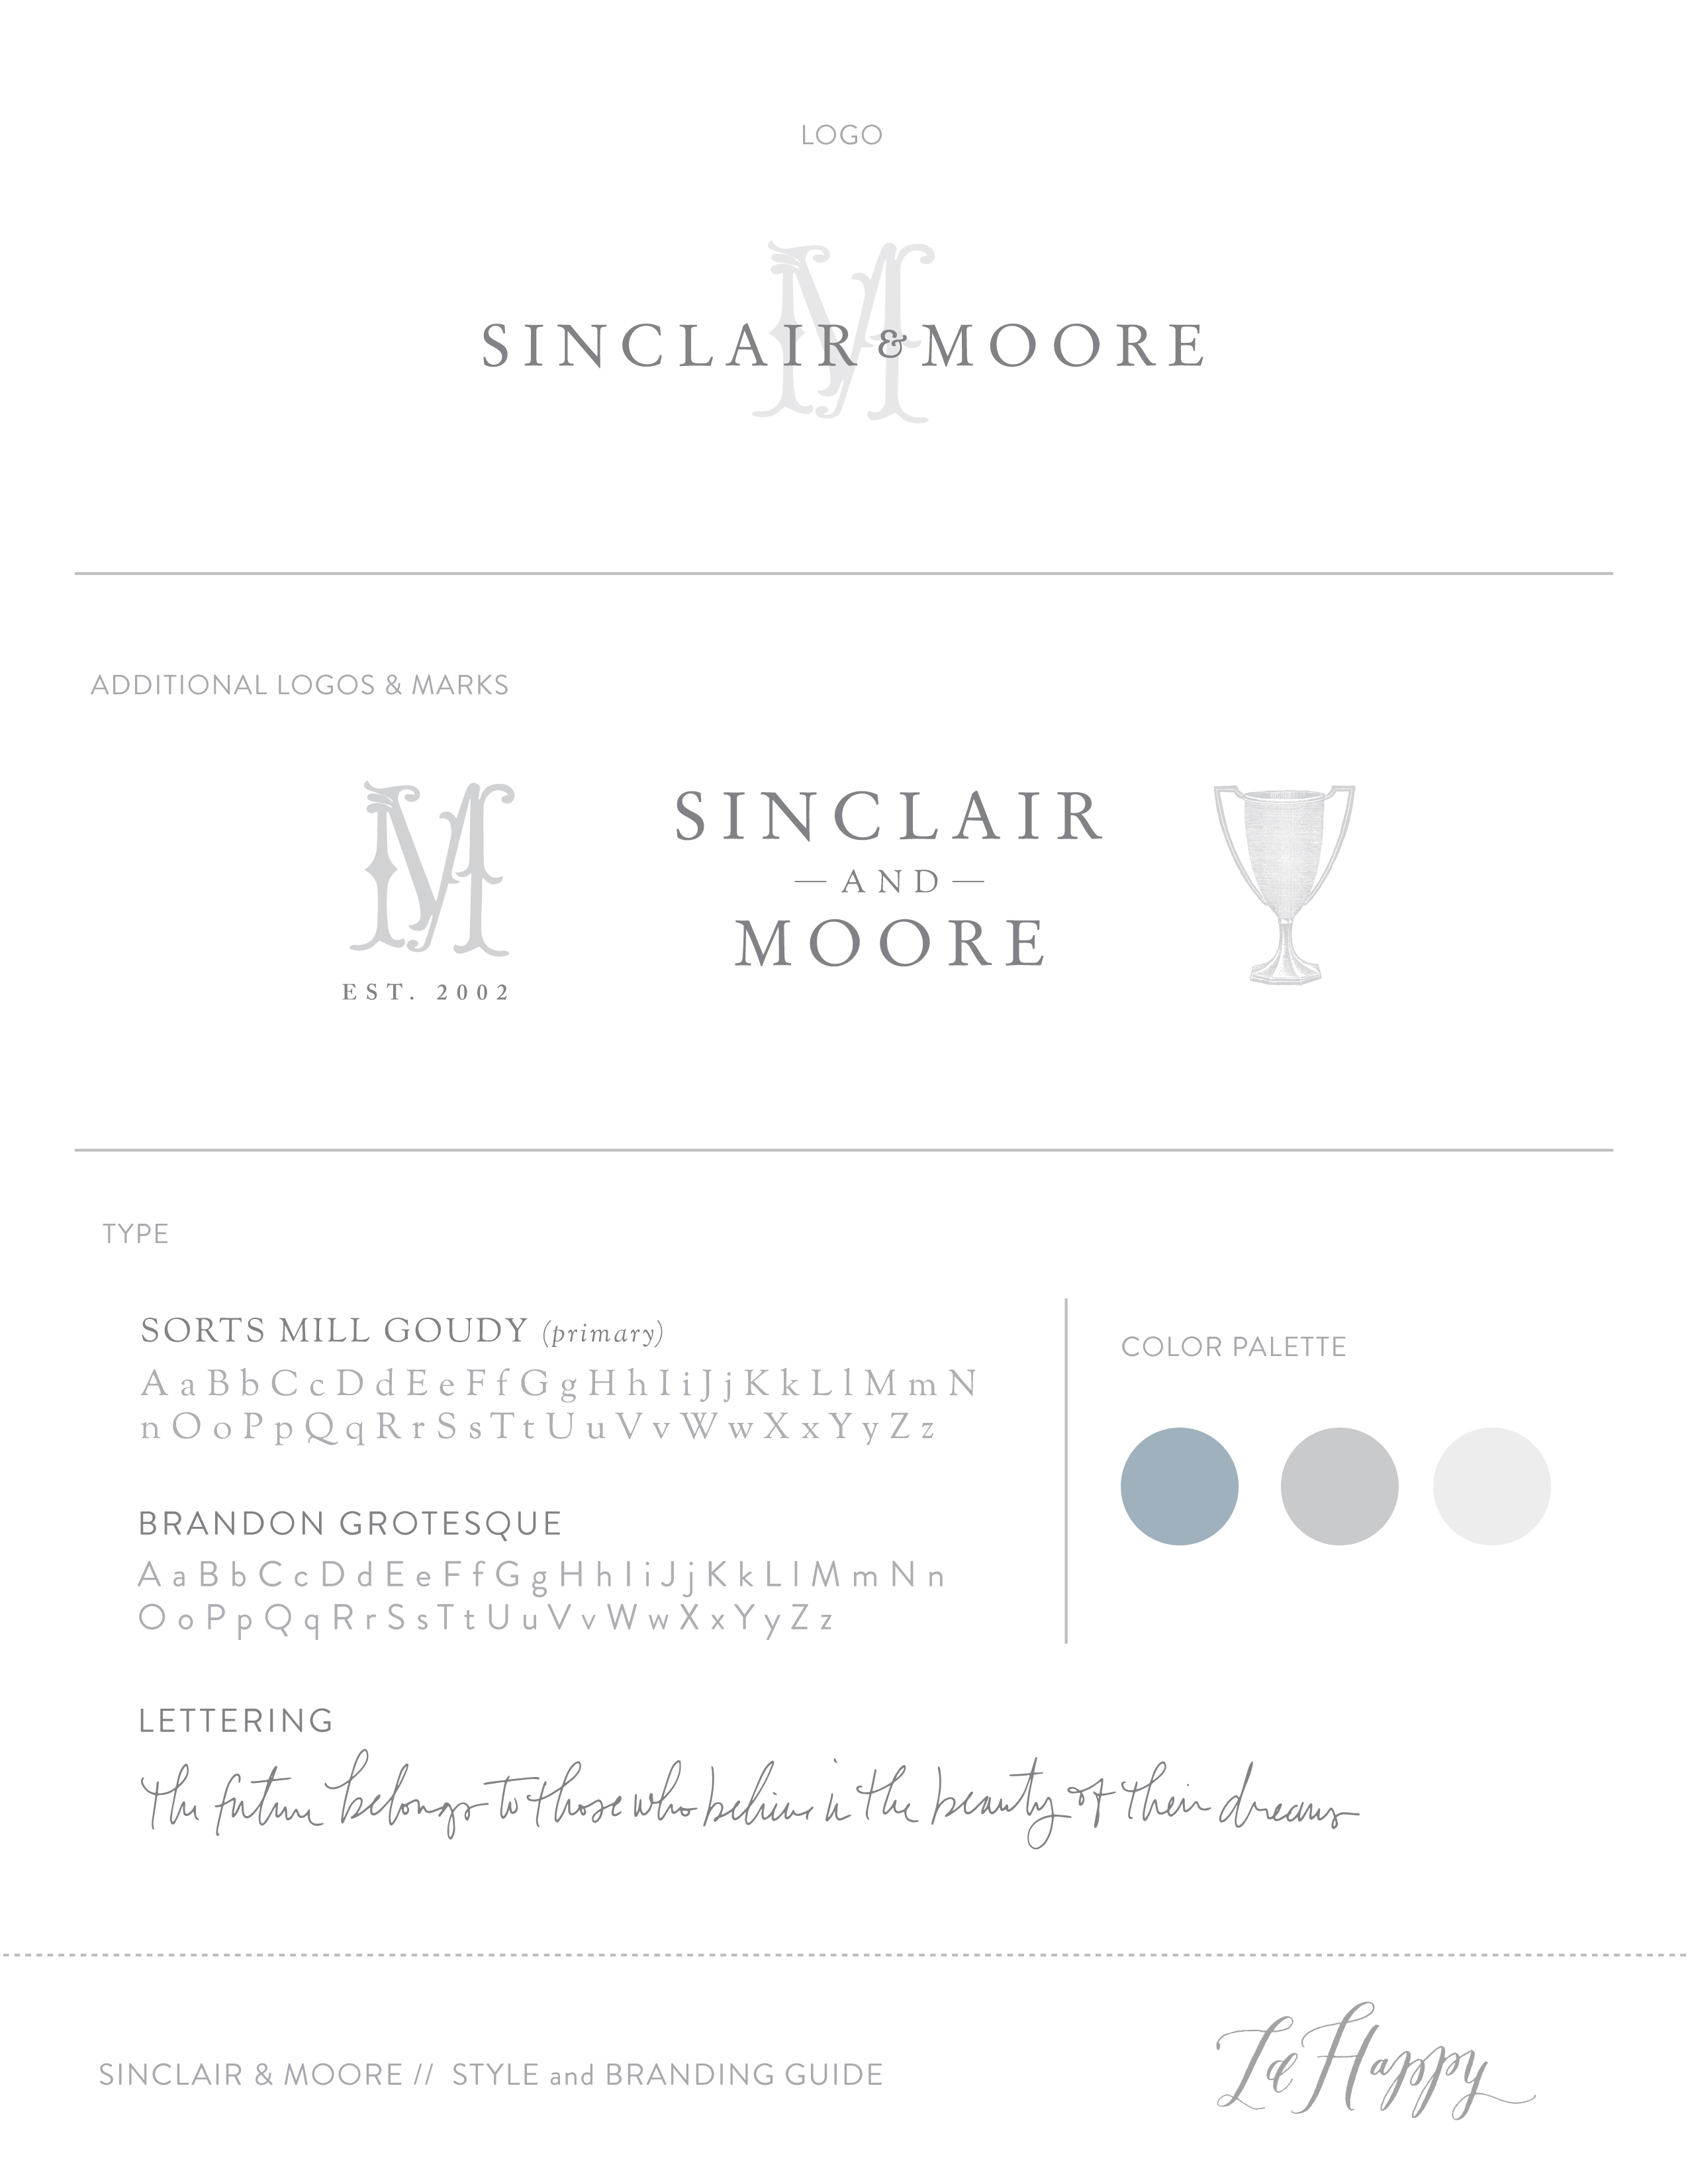 Sinclair & Moore Branding by la Happy • www.lahappy.com